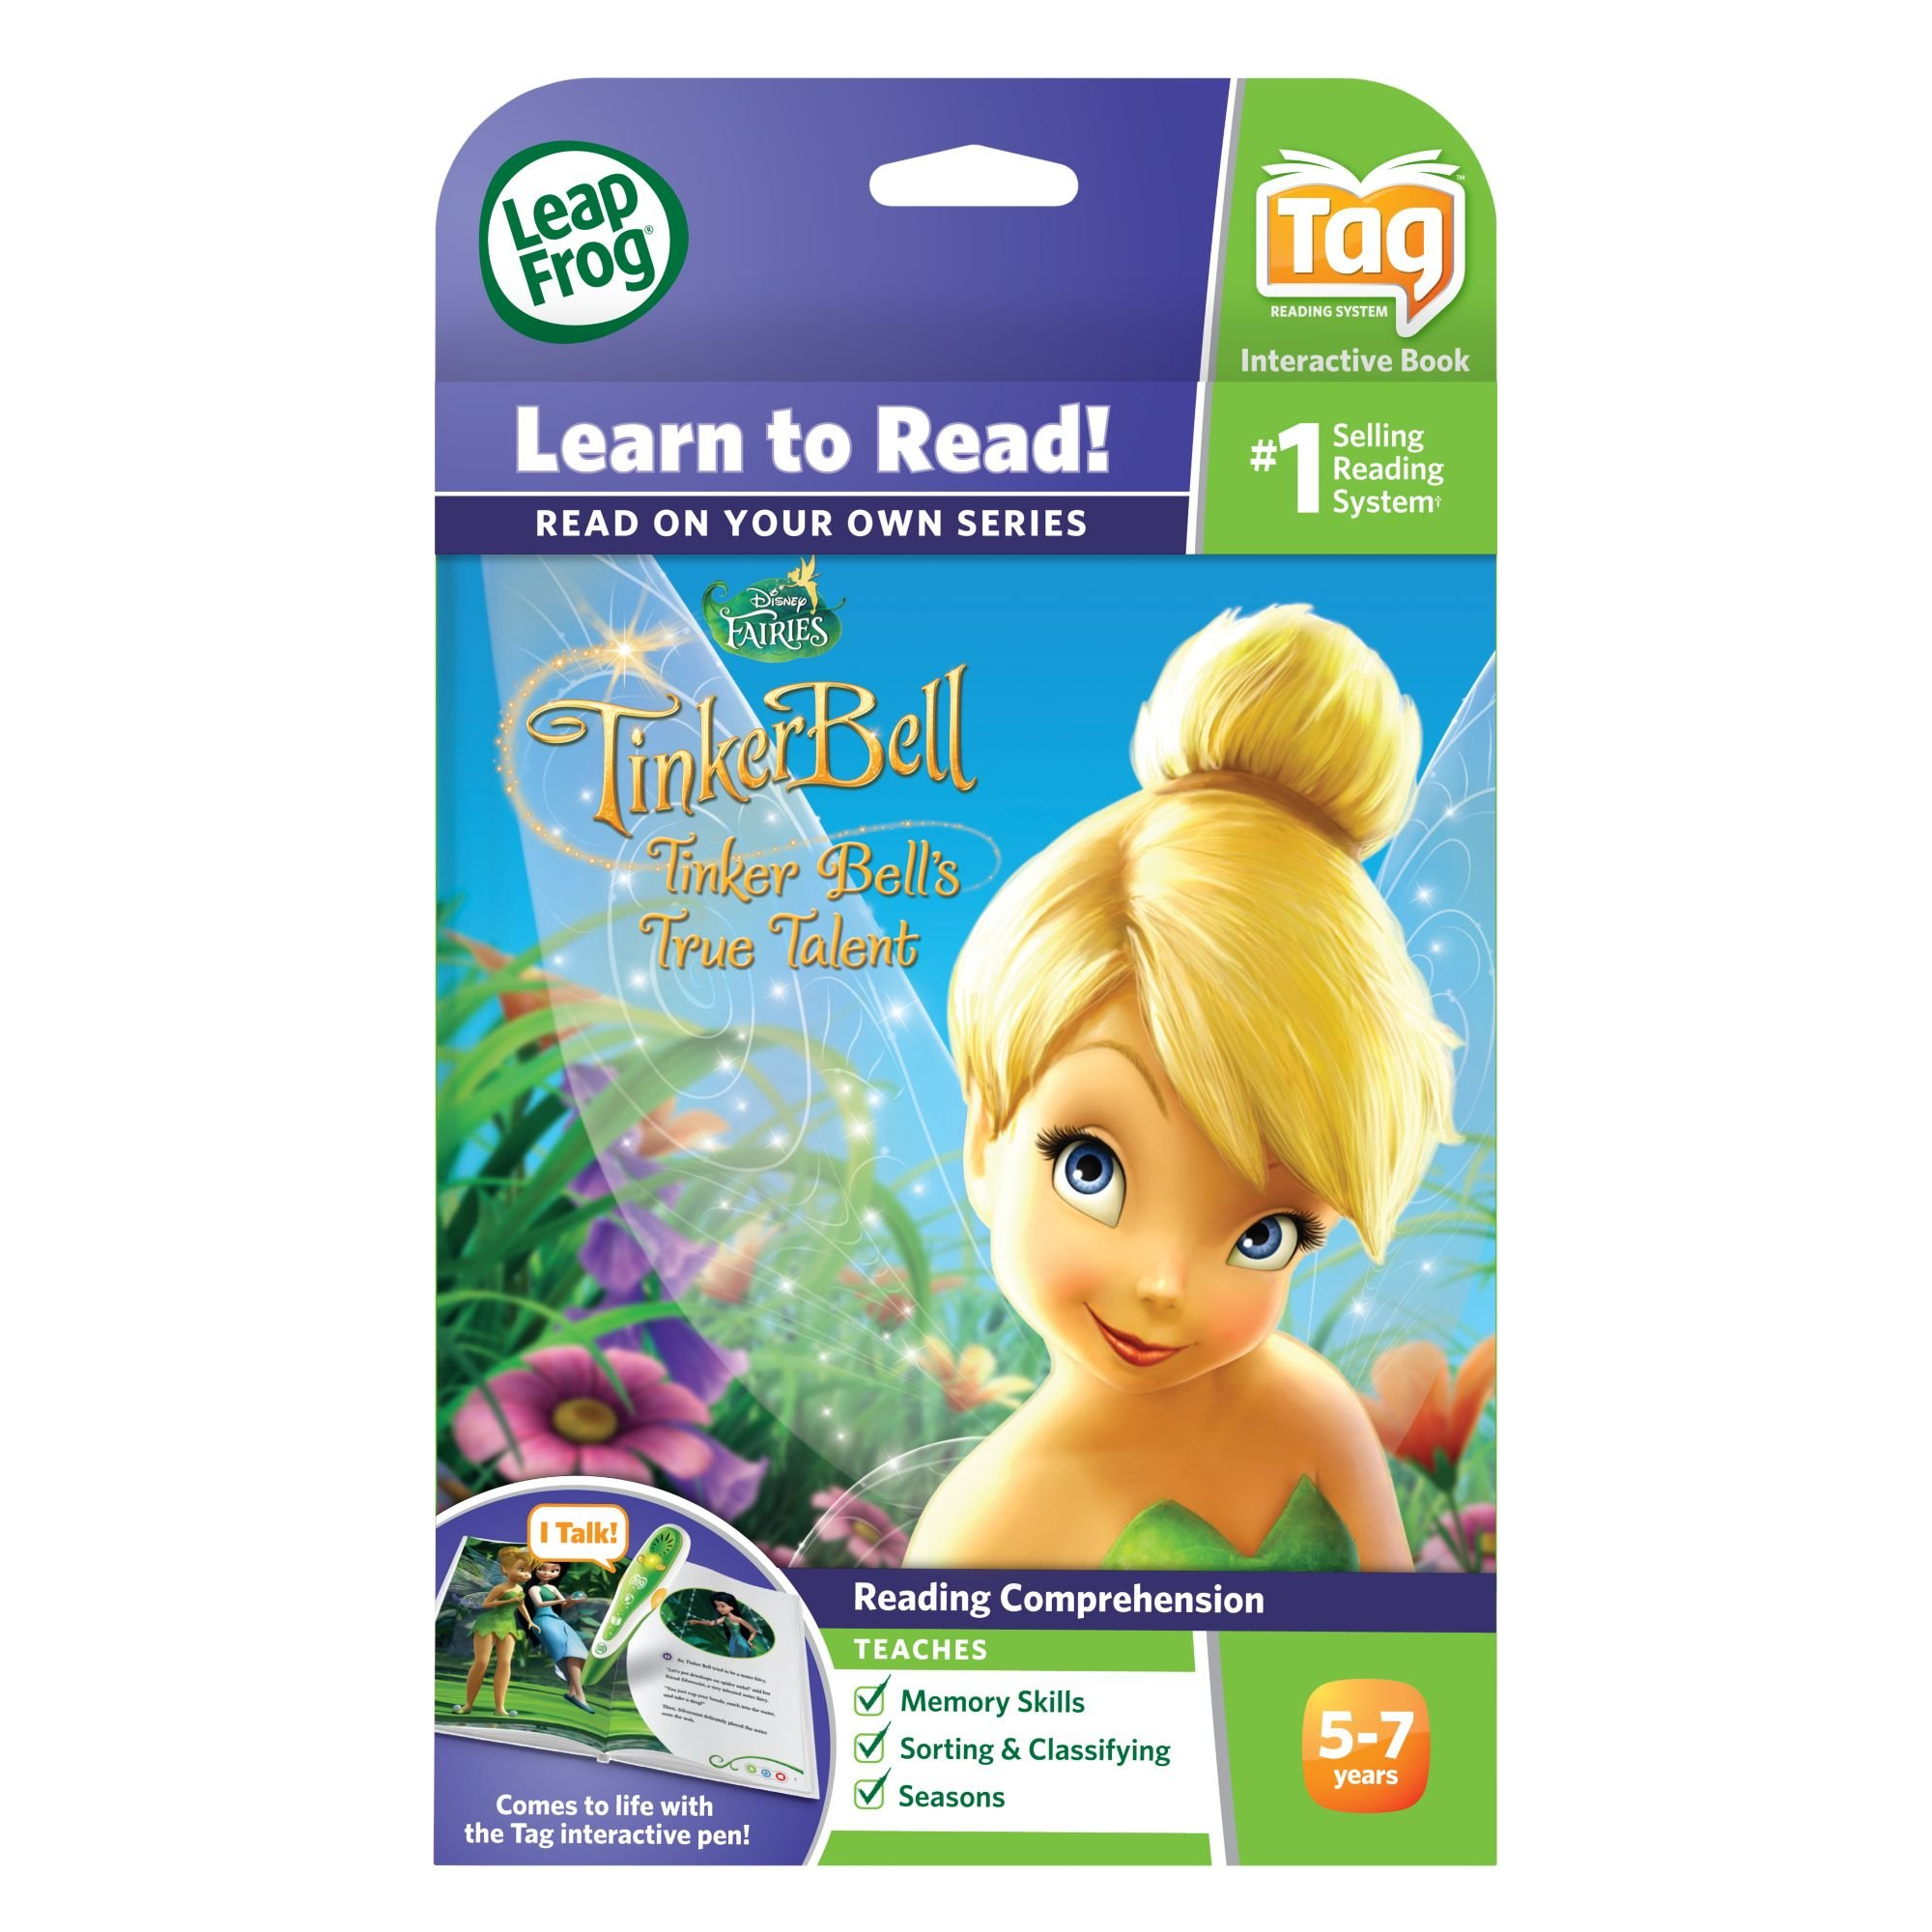 LeapFrog LeapReader Book: Disney Fairies Tinker Bell's True Talent (works with Tag) by LeapFrog (Image #4)